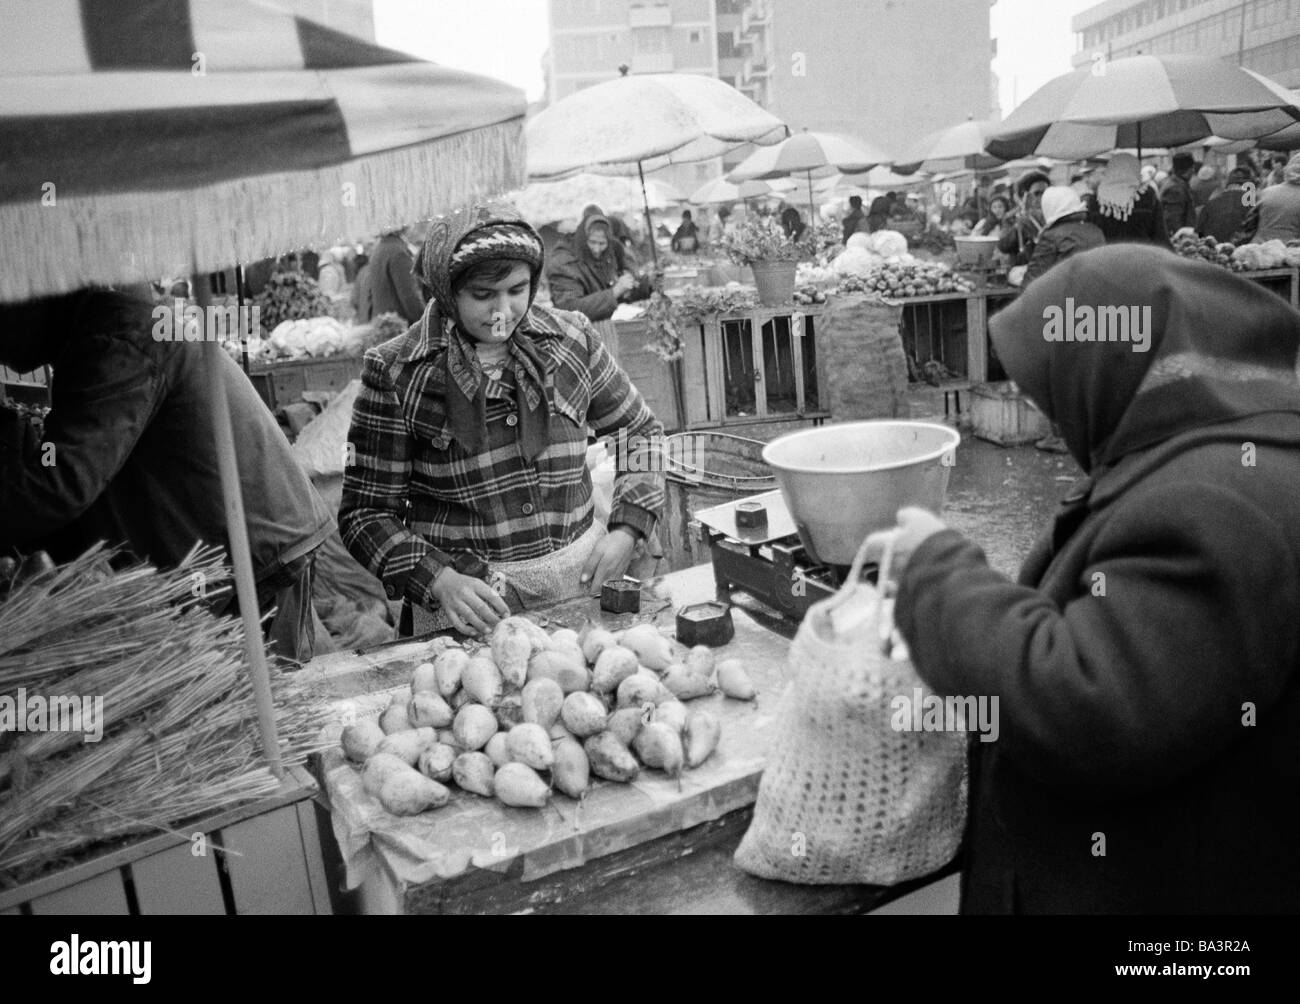 Eighties, black and white photo, people, weekly market, market stall with fruit and vegetables, market woman, aged - Stock Image